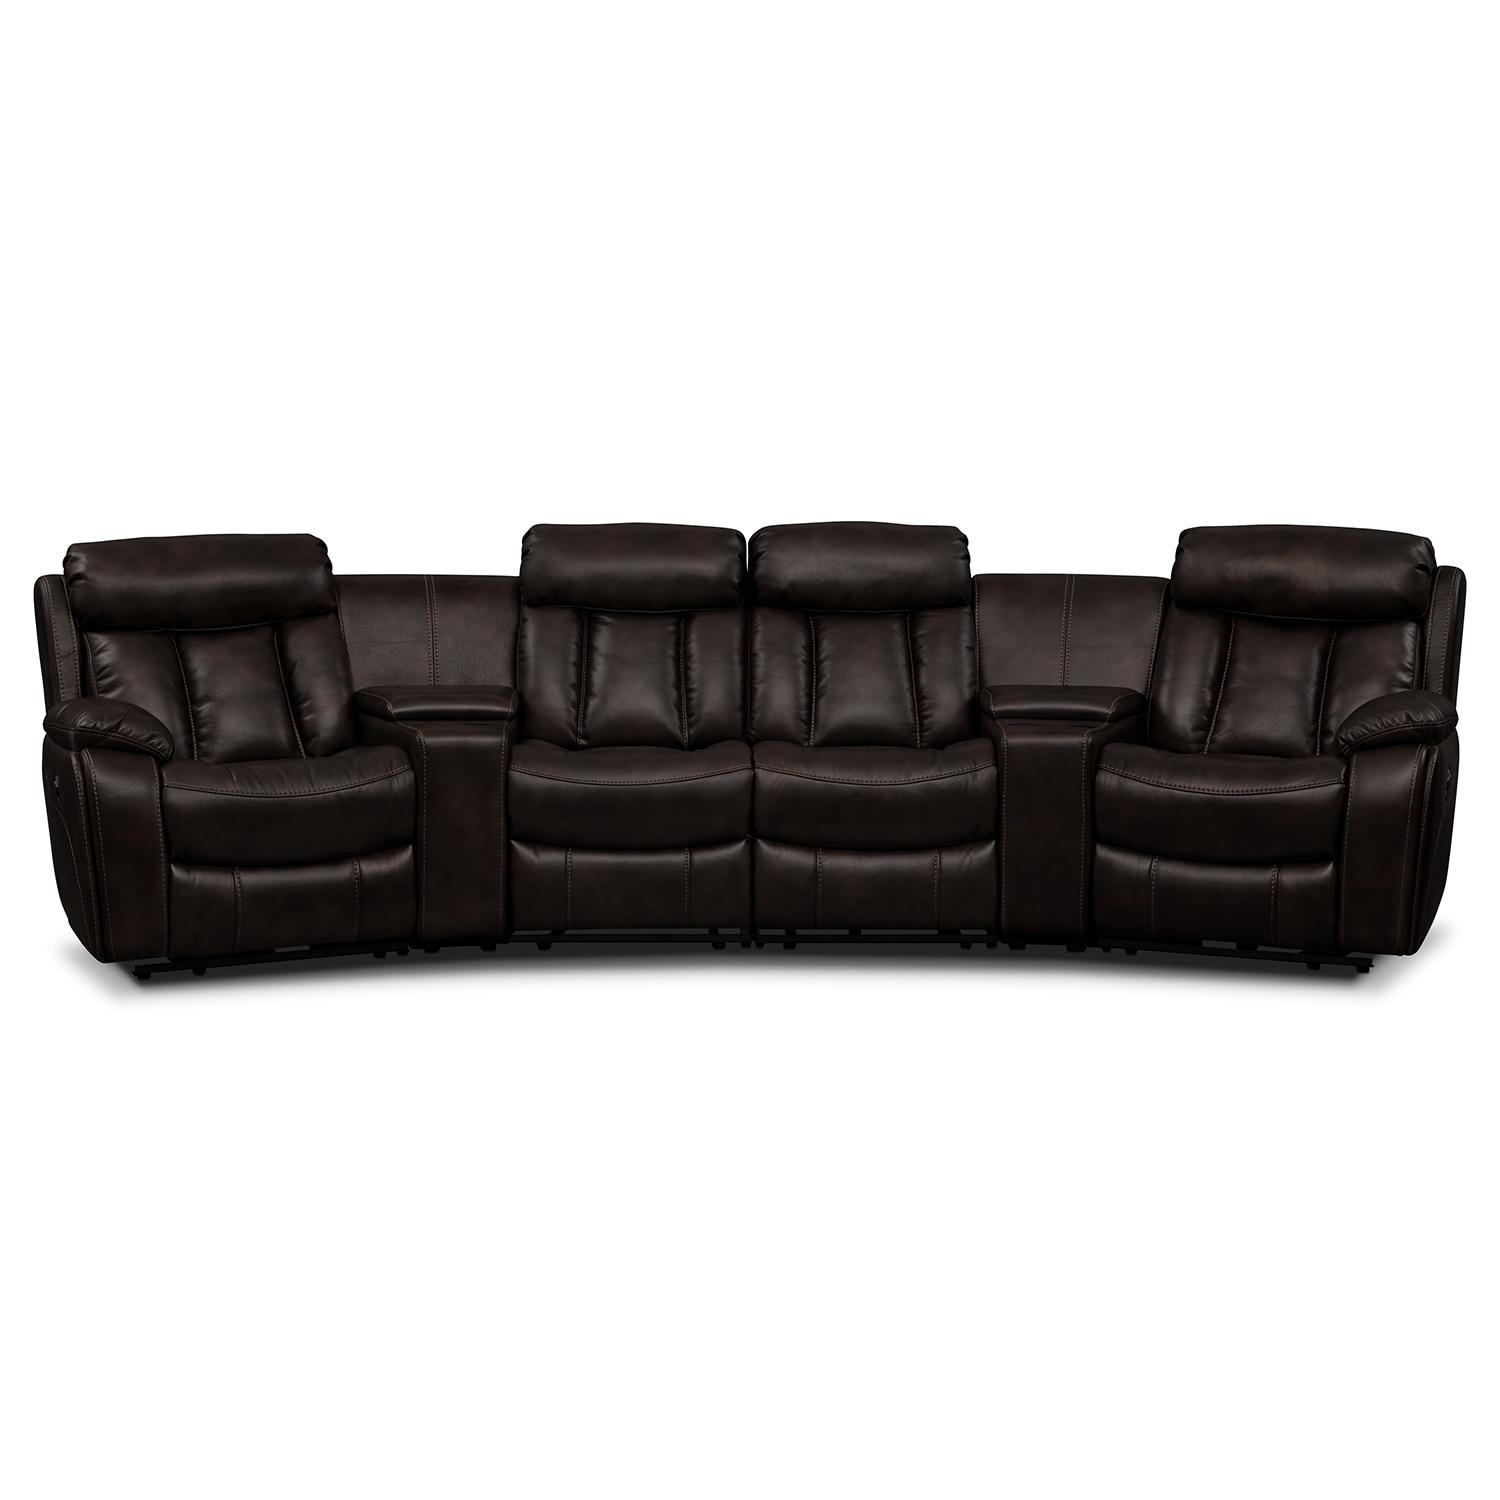 Sectionals With Cup Holders – Marketing Module | Value City Furniture With Sectional With Cup Holders (Image 15 of 20)